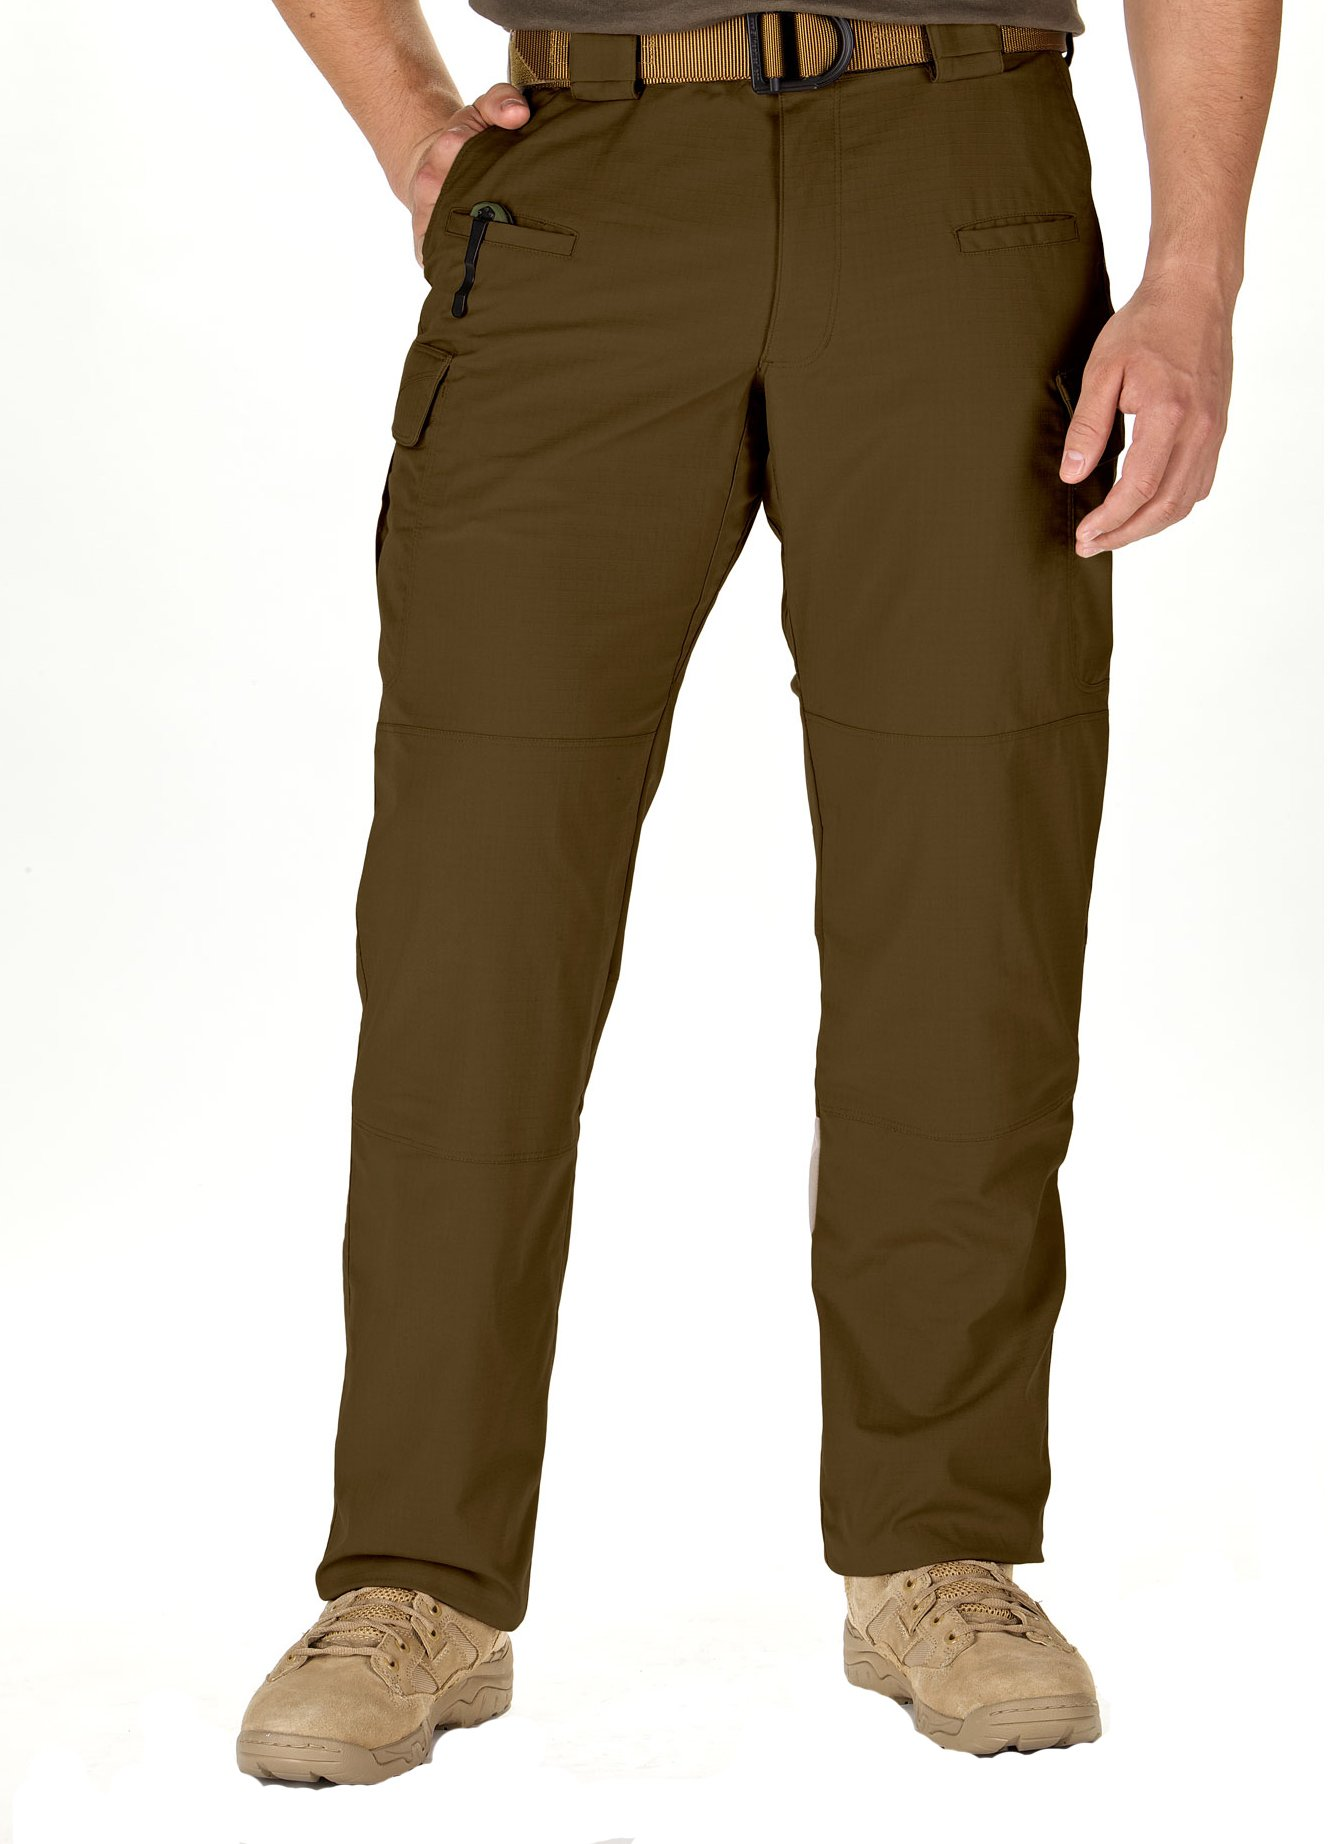 5.11 Tactical Stryke Pant, Battle Brown, 42x30